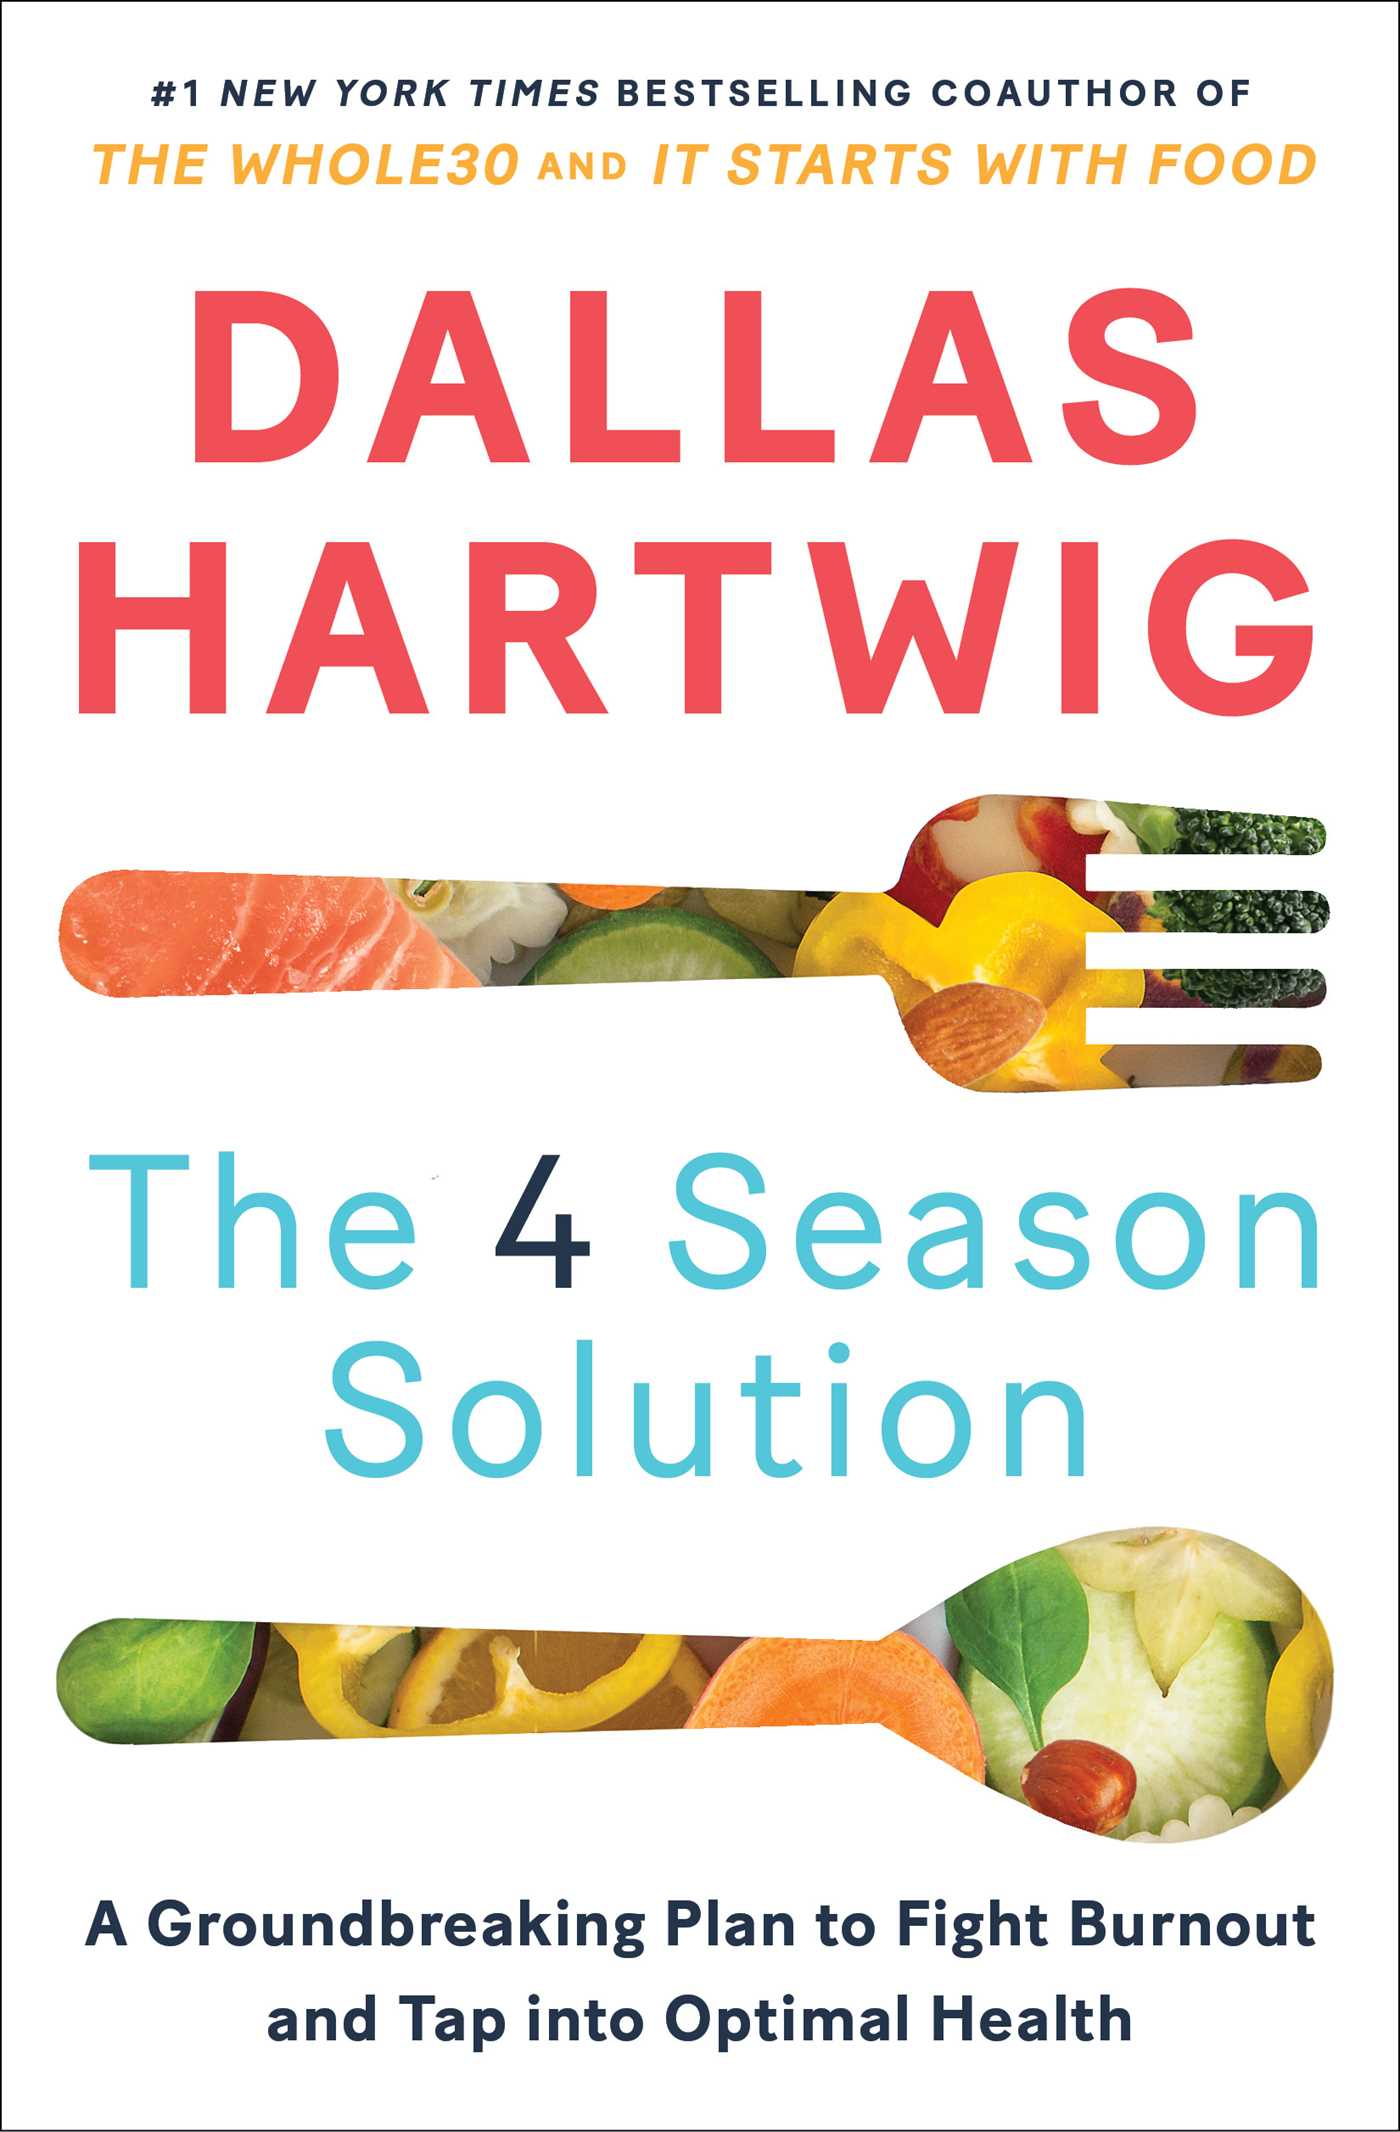 The 4 Season Solution The Groundbreaking New Plan for Feeling Better, Living Well, and Powering Down Our Always-On Lives